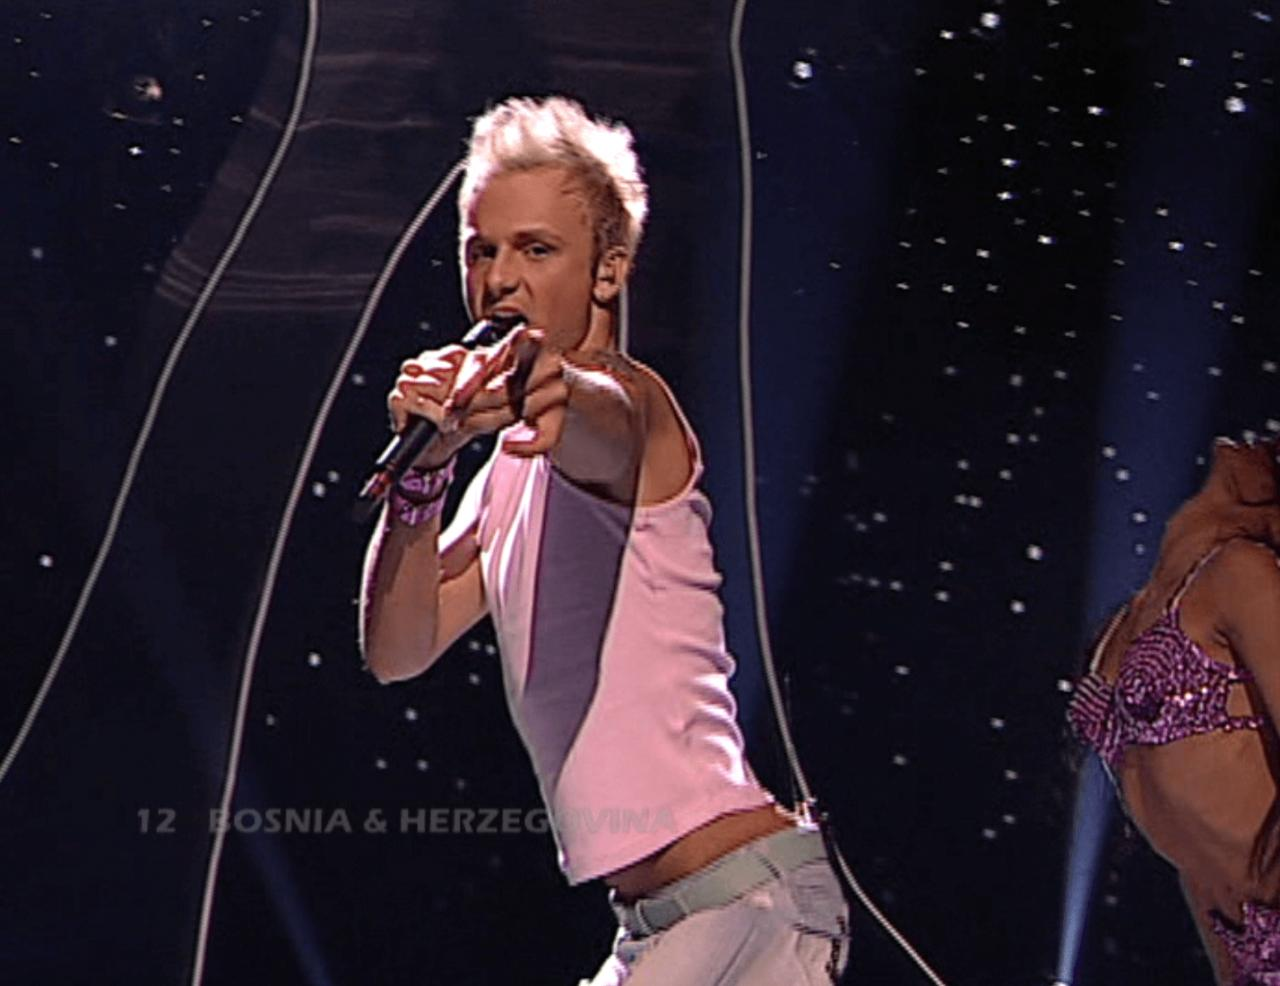 Eurovision stars from the past